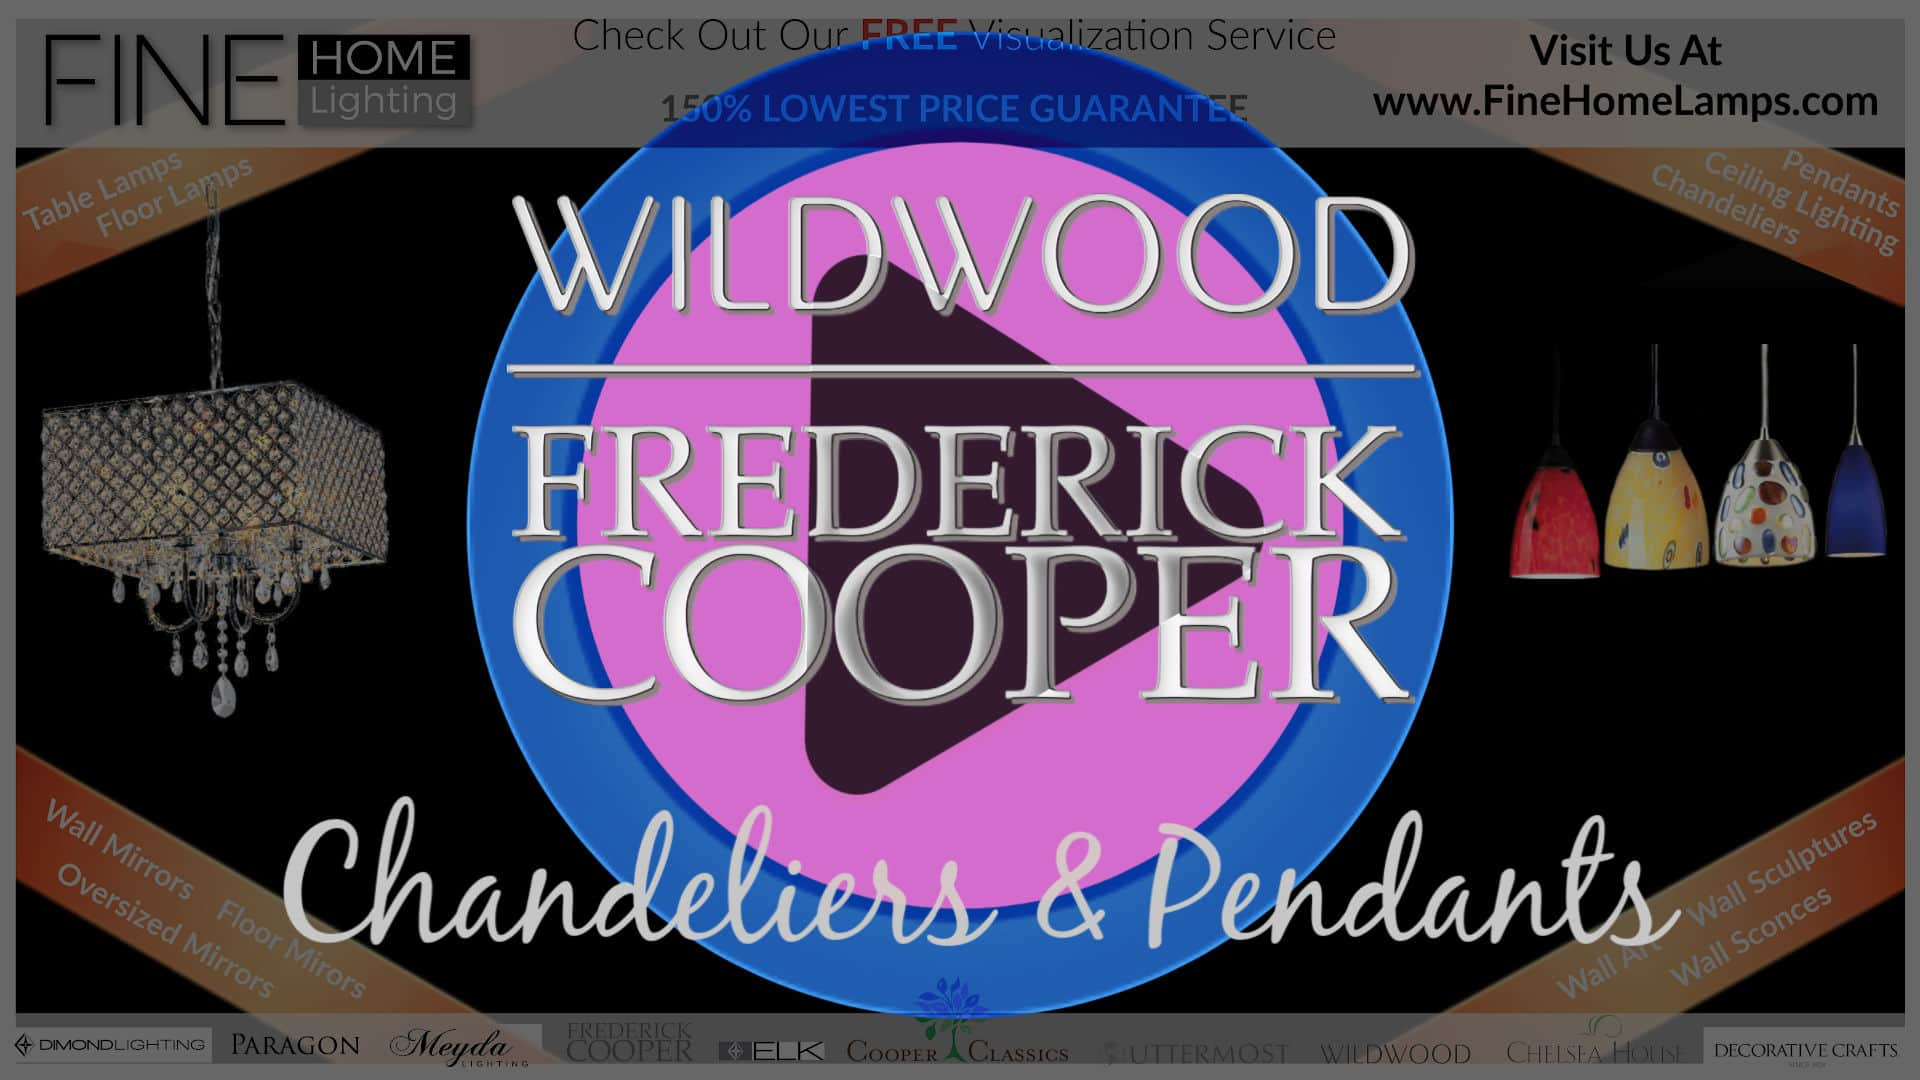 Wildwood-Frederick-Cooper-Chandeliers-Pendants-Thanks-for-watching-this-video-Get-an-additional-15-percent-off-your-next-purchase-Use-Coupon-Code-VIDEO